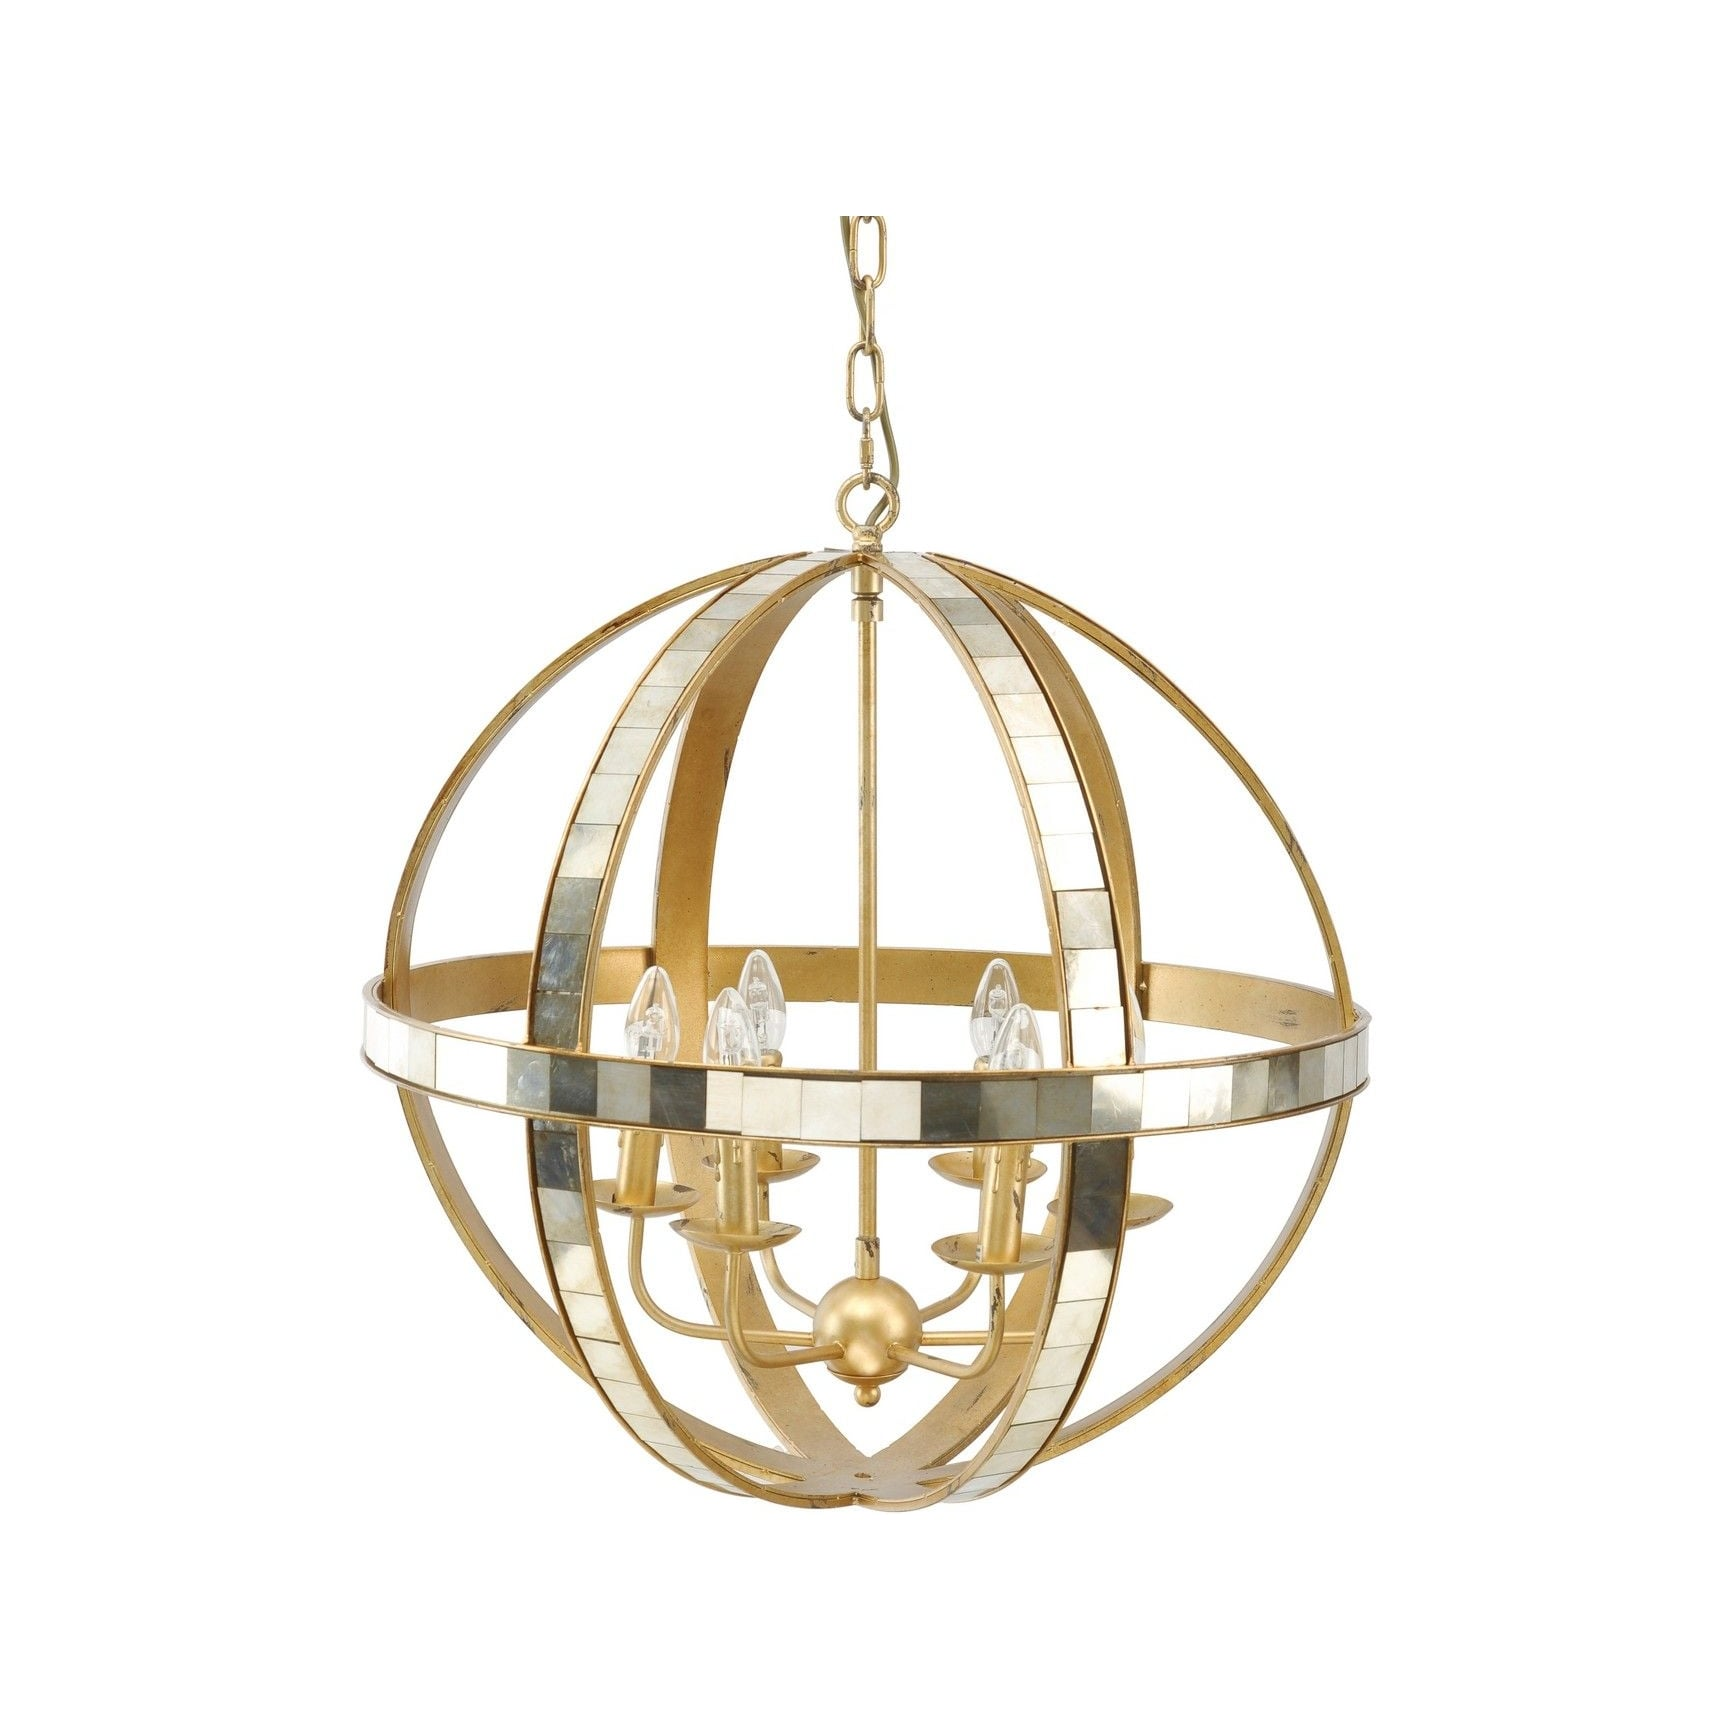 Gold orb chandelier modern ceiling light